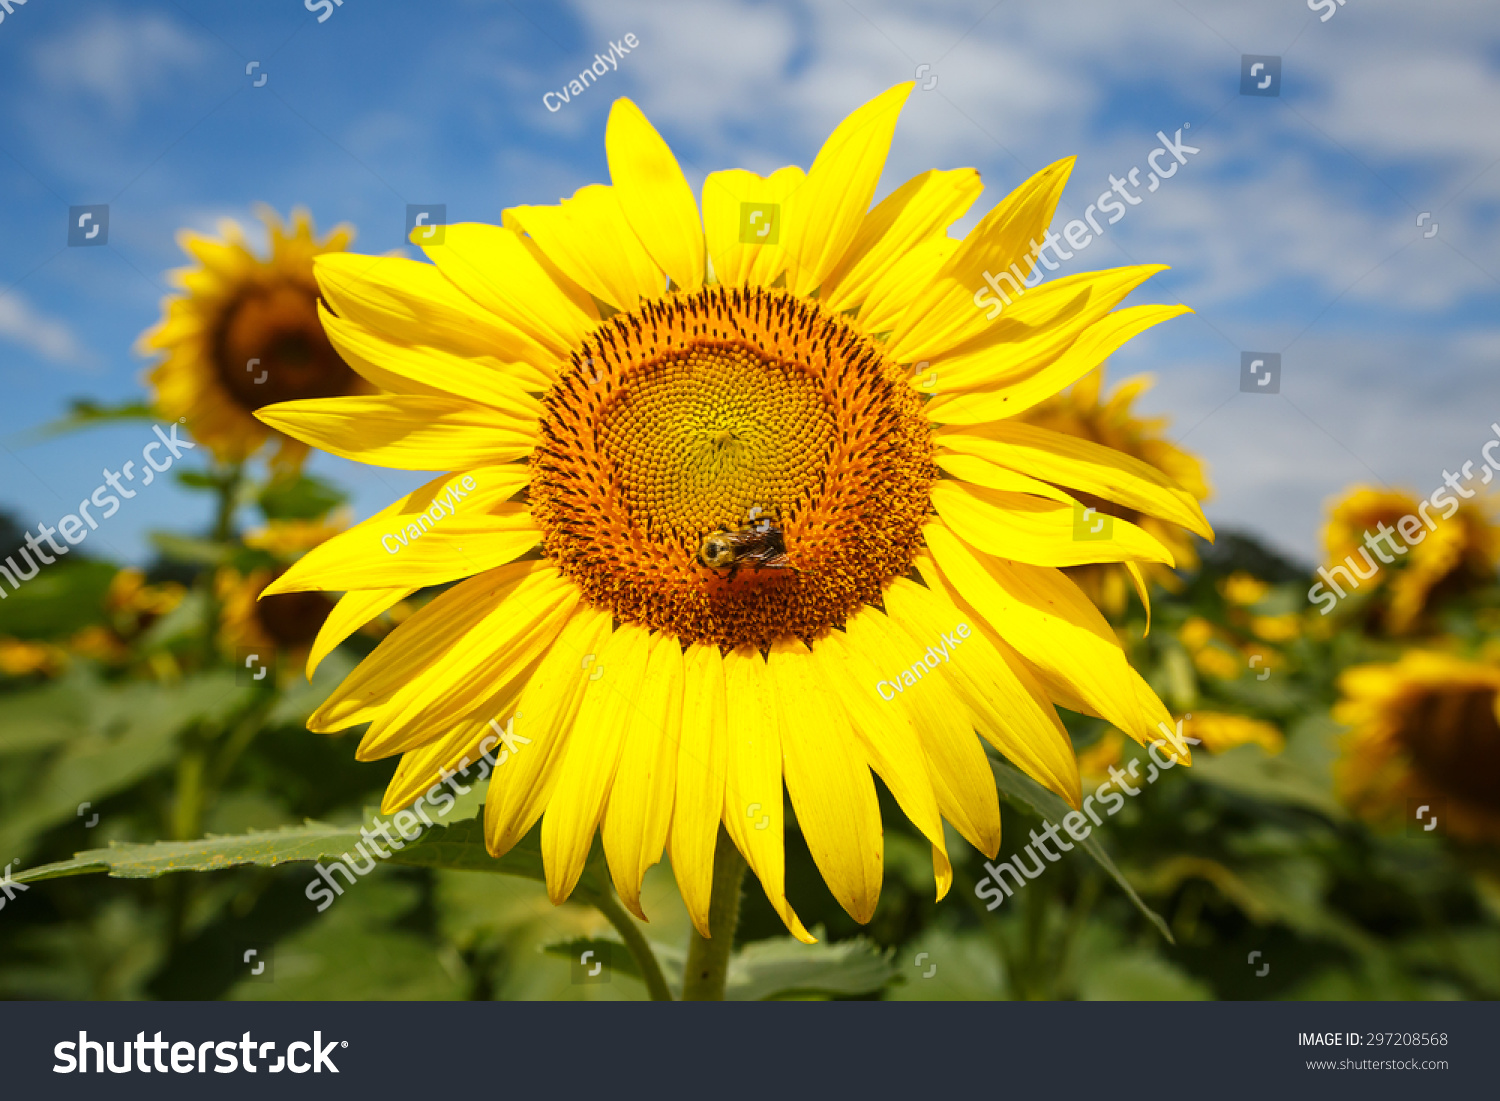 Big daisylike face bright yellow petals stock photo royalty free big daisy like face of bright yellow petals and brown center on tall annual izmirmasajfo